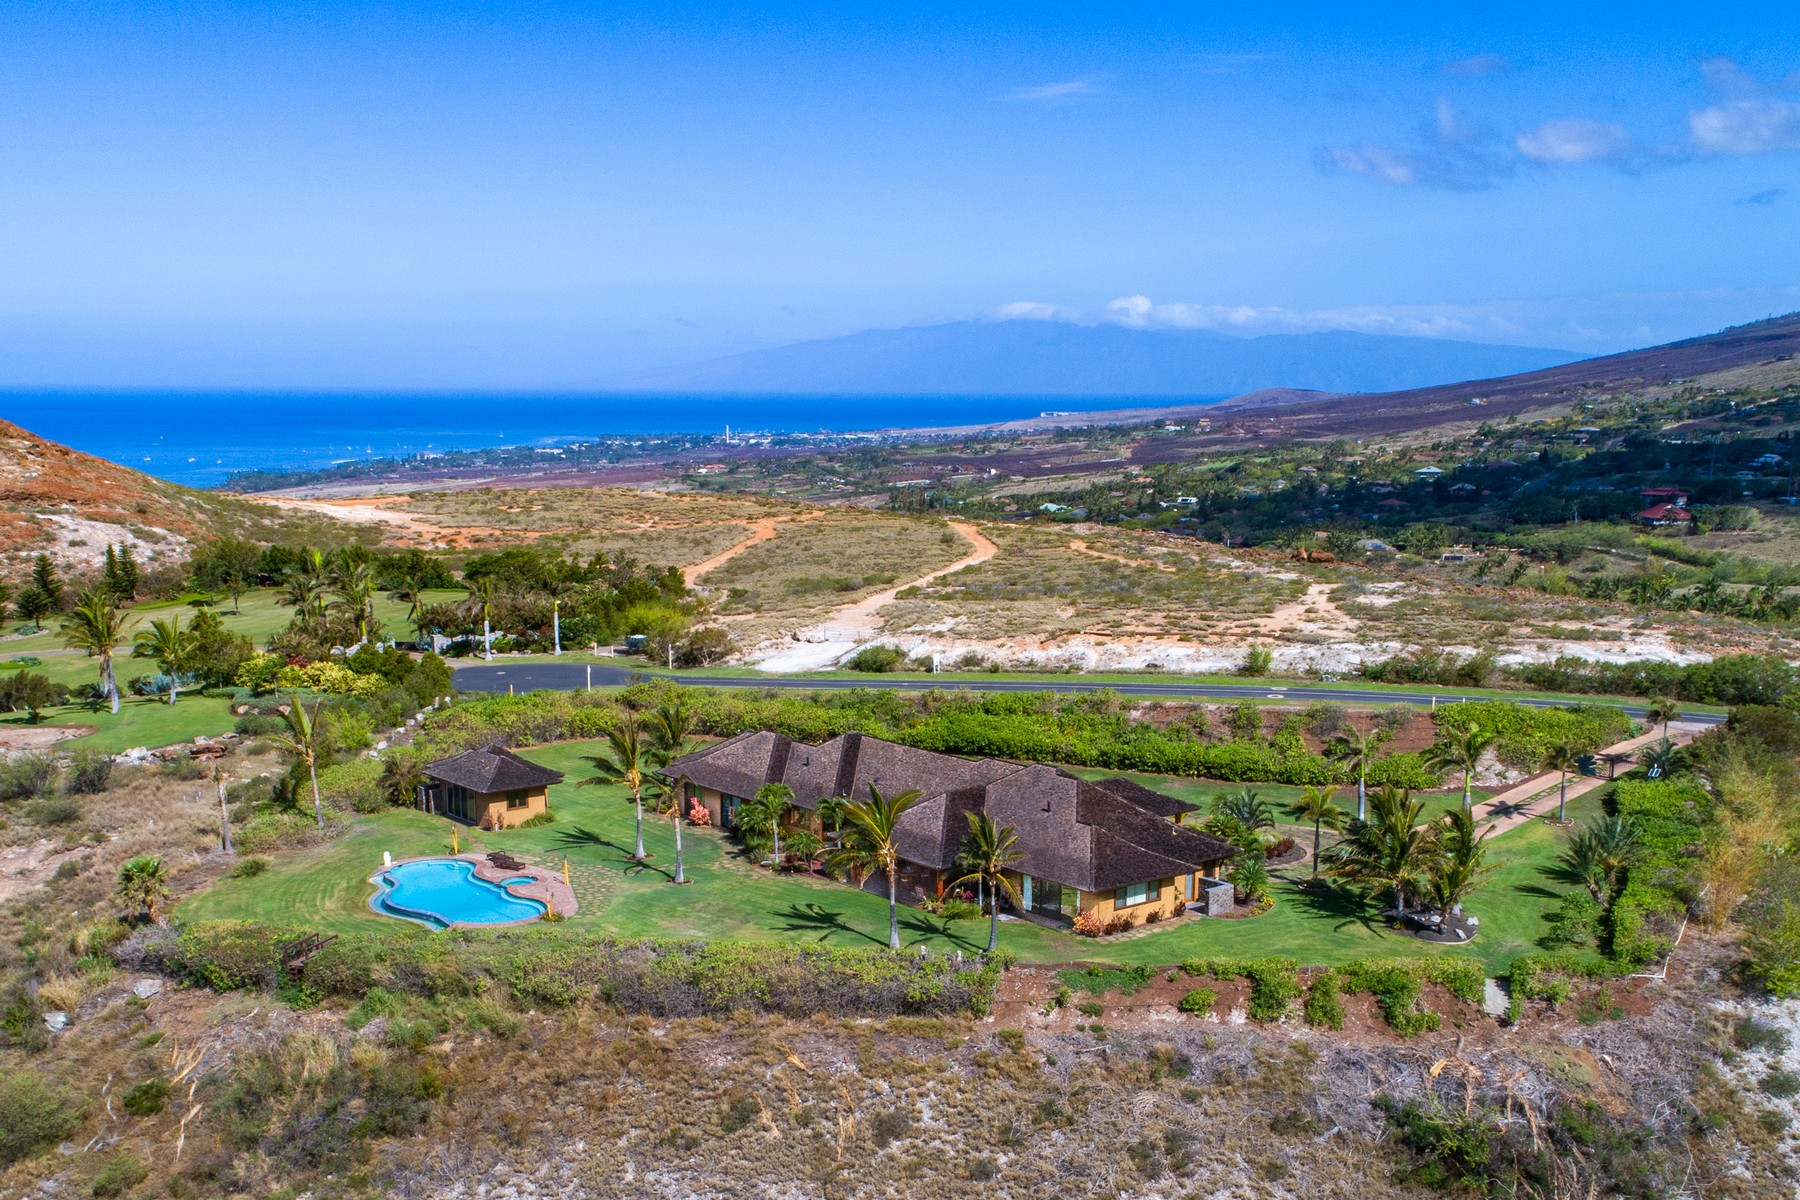 Single Family Homes for Sale at Live Elevated... Commanding Mountain Top Location 411 Wailau Place Launiupoko, Hawaii 96761 United States